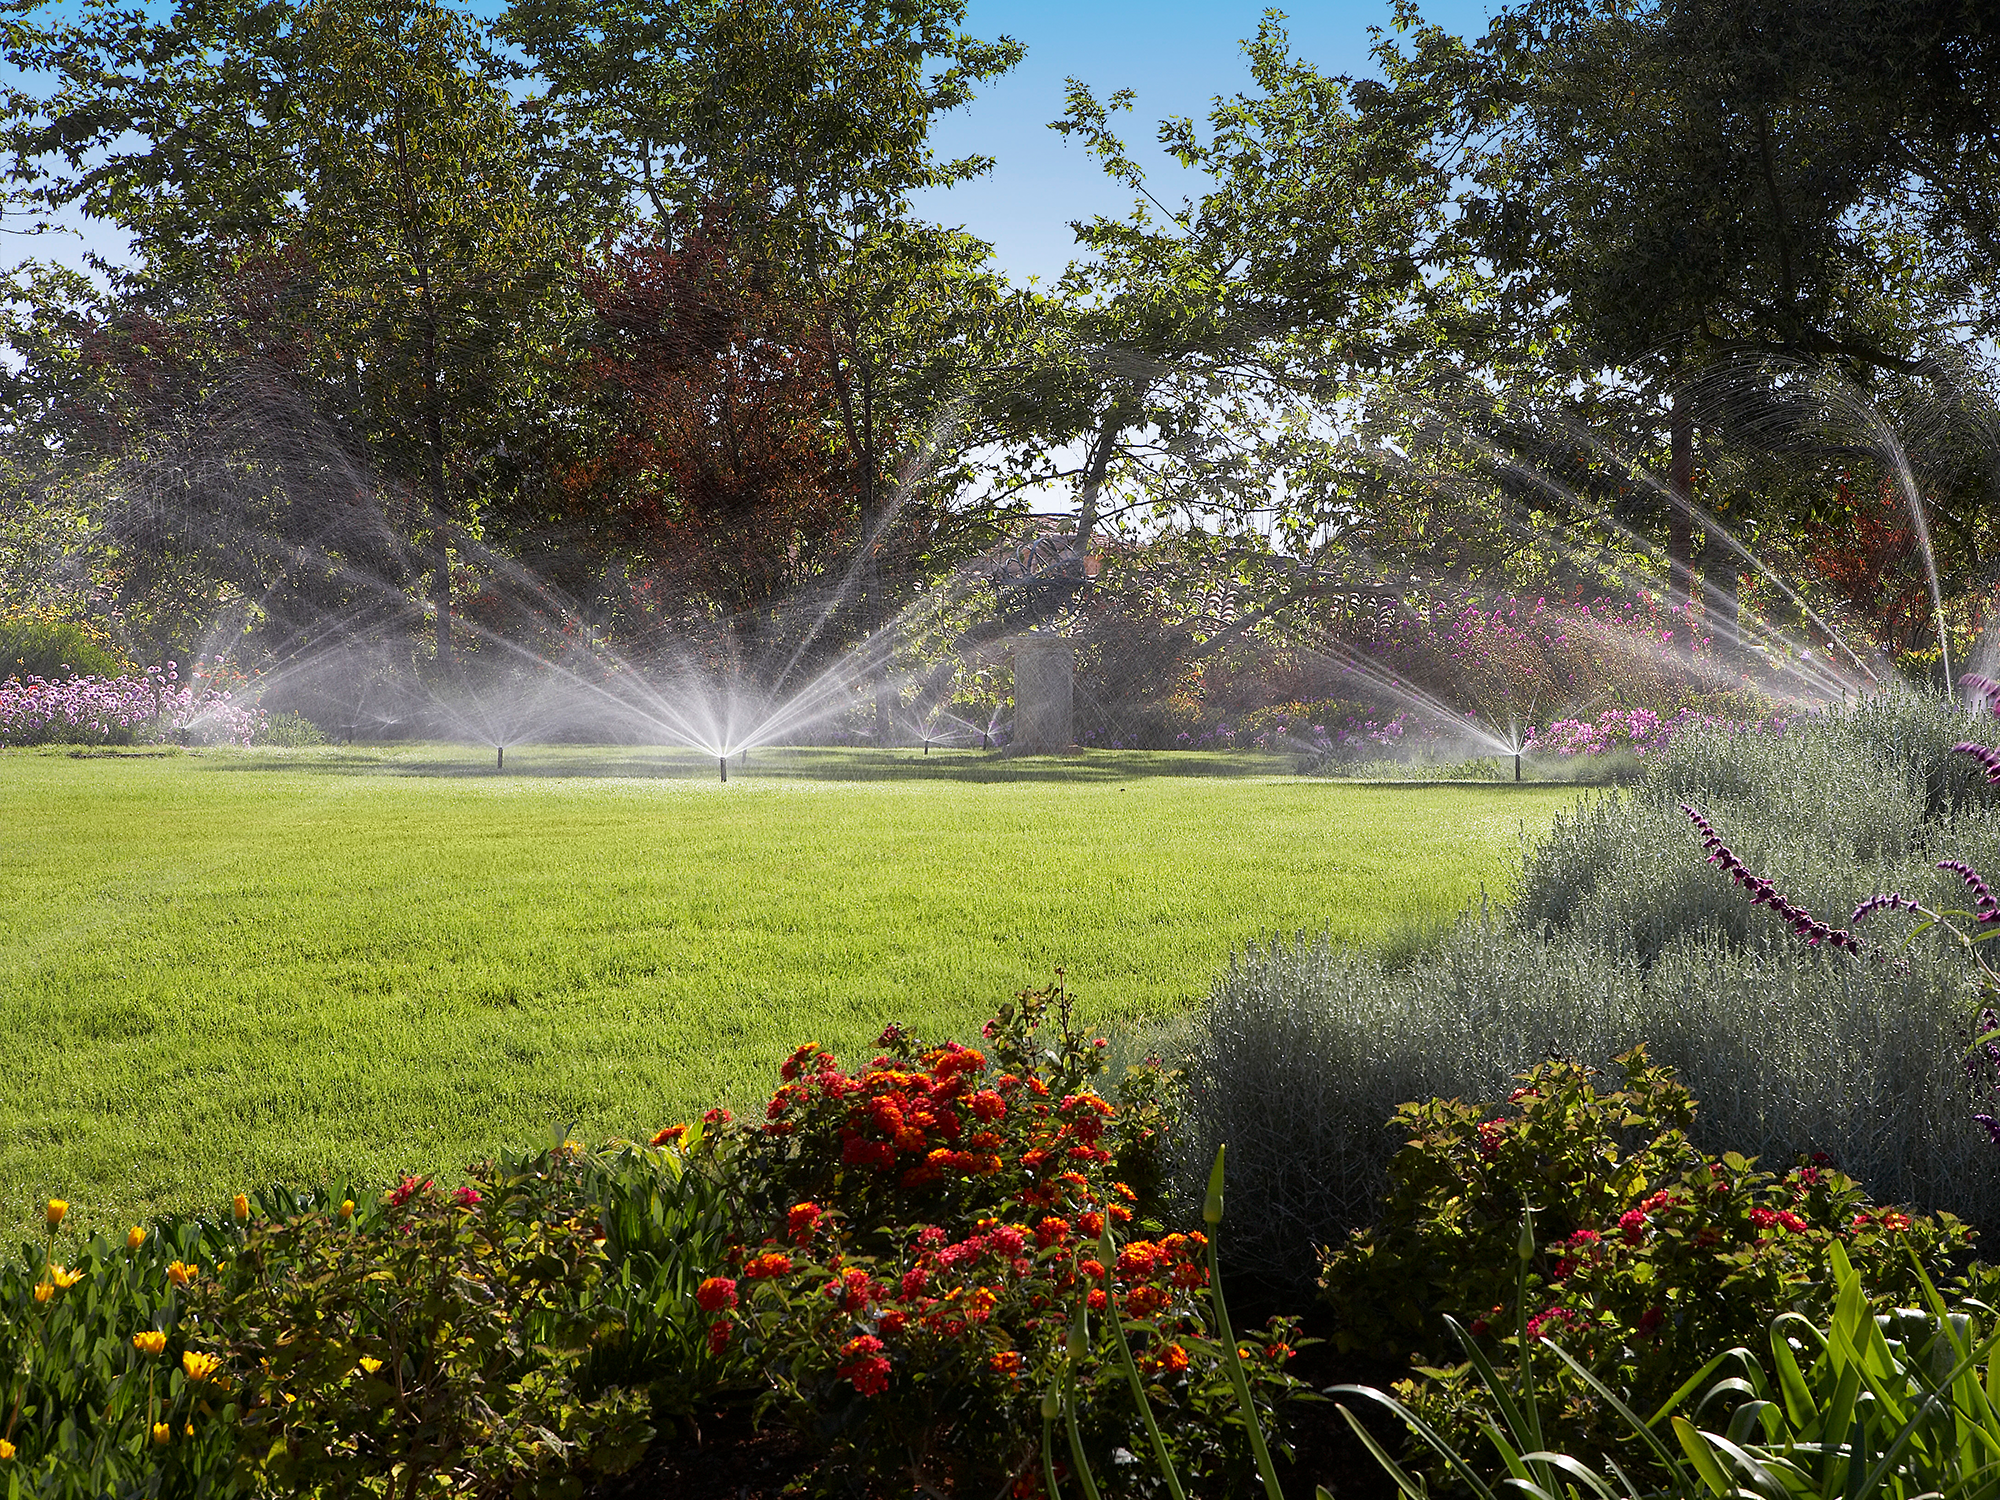 Our Mission - ABC Irrigation, Inc. is dedicated to providing irrigation systems and consulting to the best interest of the client and end-user; designing and specifying for dependability, longevity, water conservation and public safety; and providing efficient, sound irrigation.